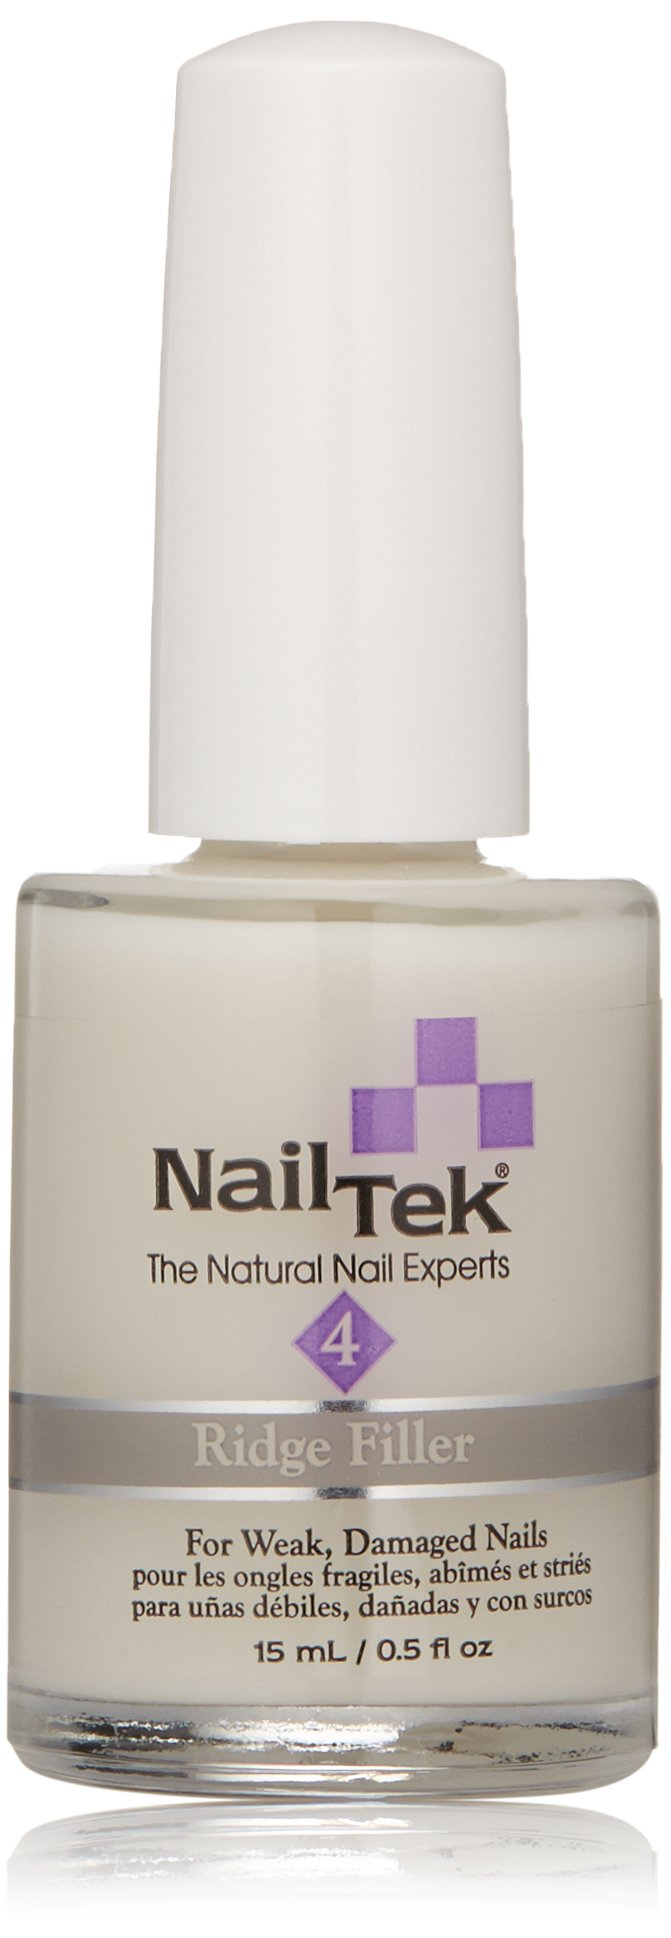 Nailtek Foundation Xtra Ridge-filling Nail Strengthener Base Coat, 0.5 Fluid Ounce by Nail Tek (Image #1)